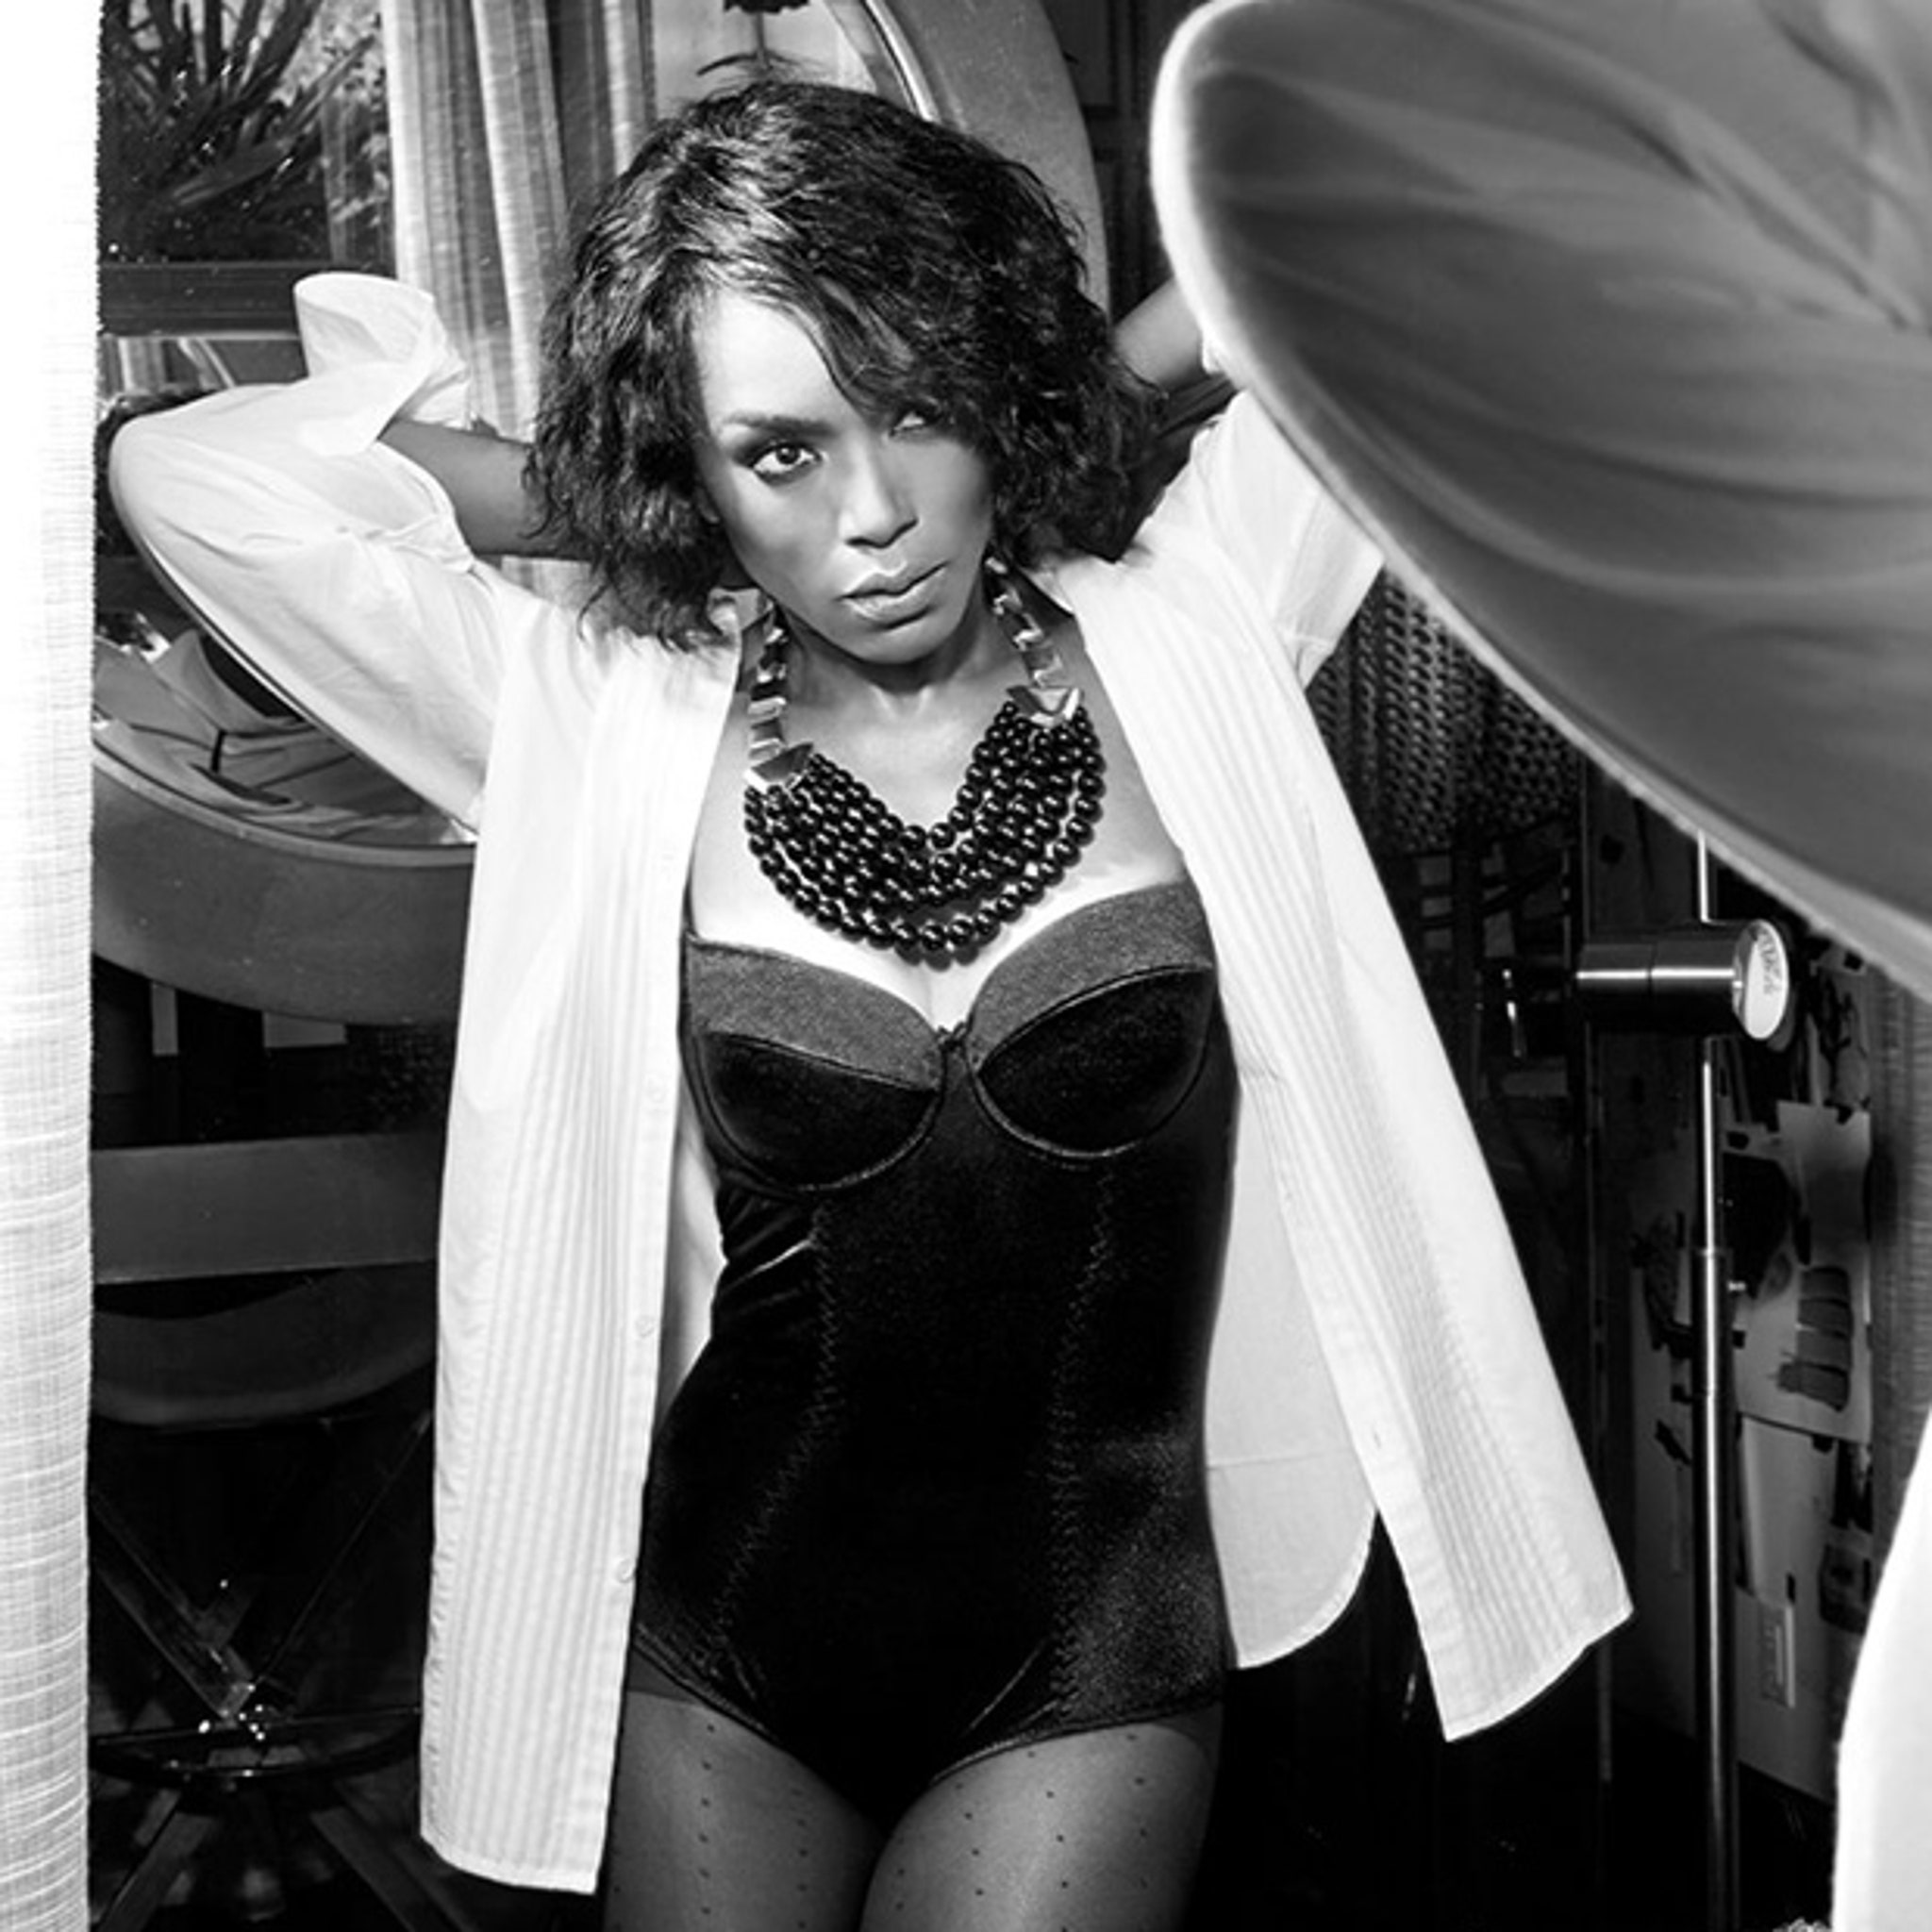 Angela Bassett 55 Looks Stunning In Sexy Lingerie See The Pics